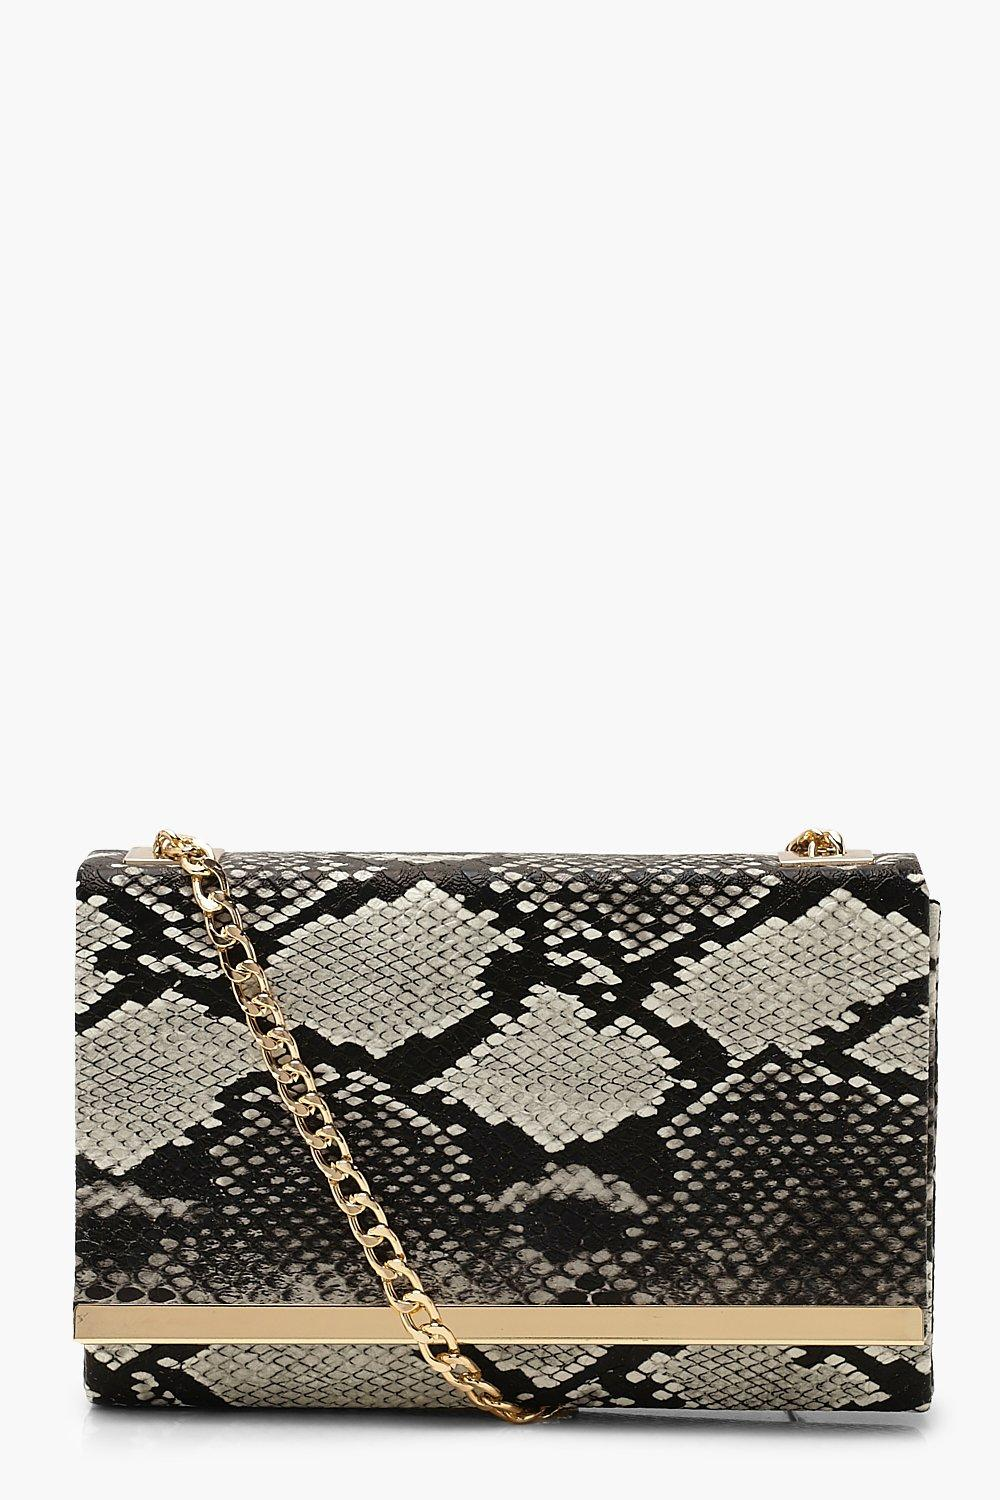 boohoo Womens Faux Snake Structured Suedette Clutch Bag - Black - One Size, Black